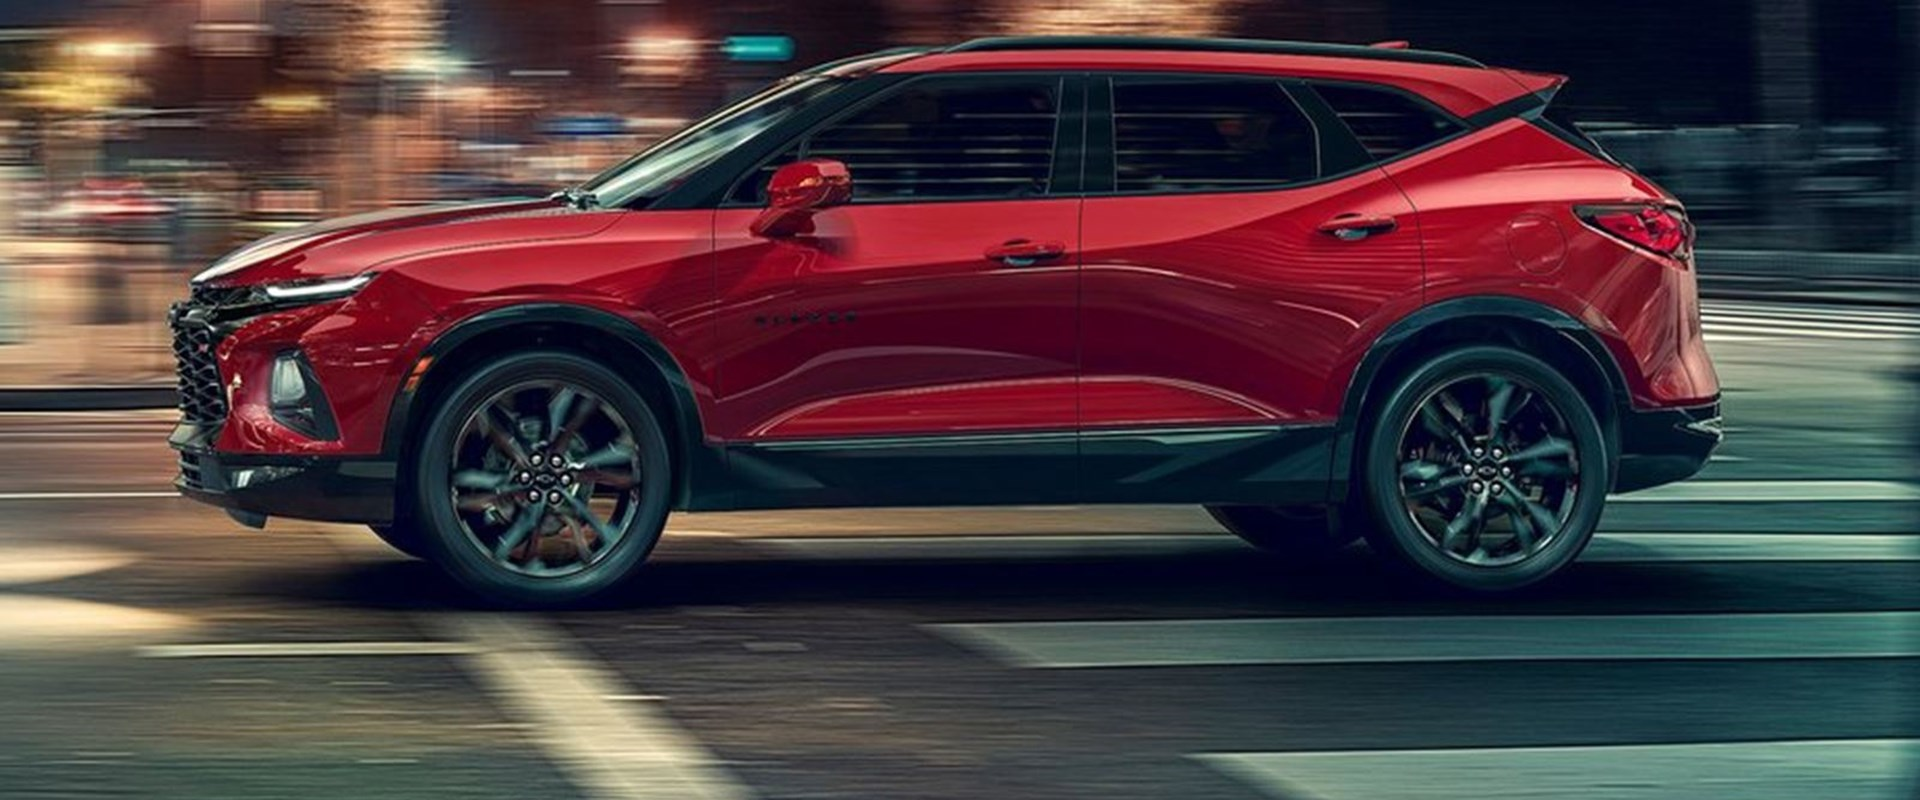 The 2019 chevrolet blazer is back and it looks like a camaro suv the 2019 chevrolet blazer is back and it looks like a camaro suv publicscrutiny Image collections